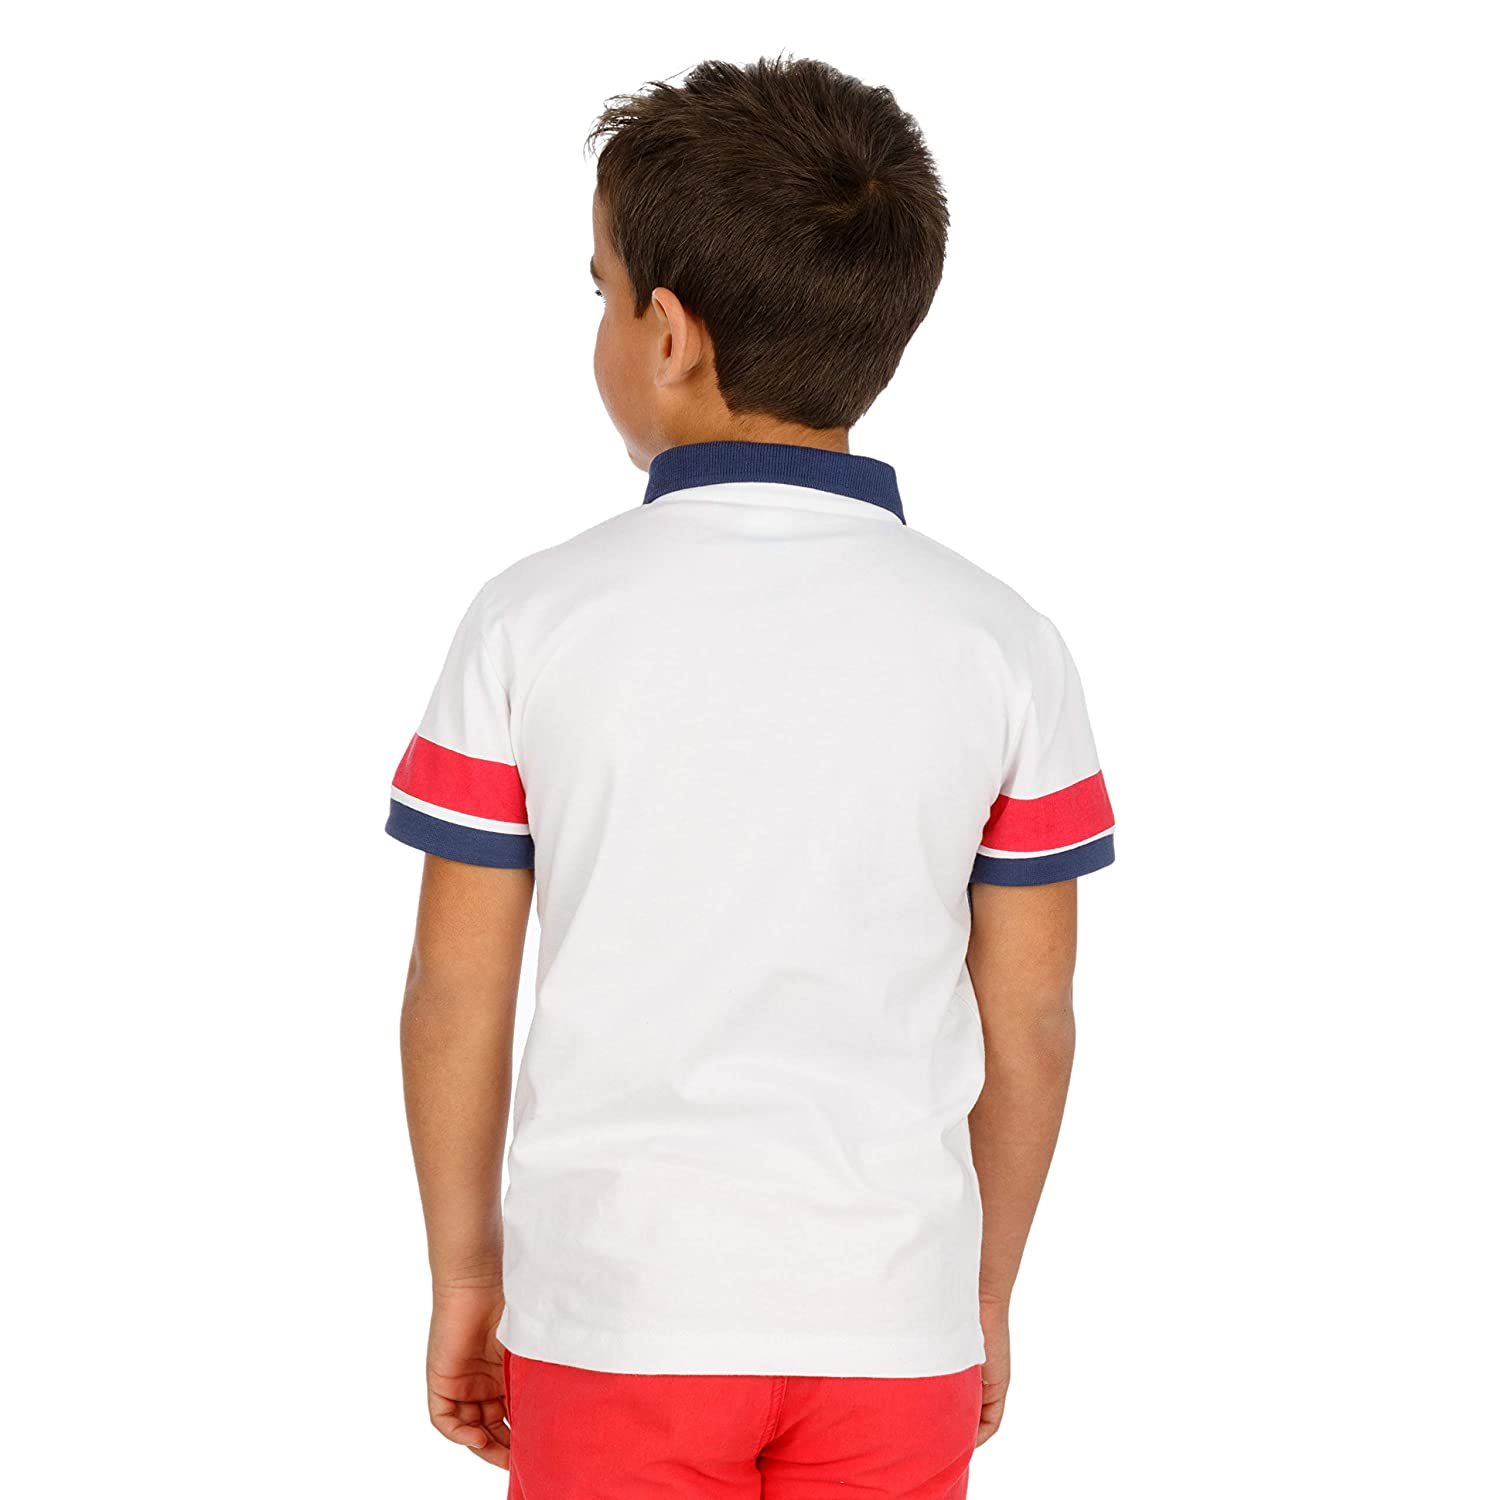 Top Top /  cacorale/  Polo Bambino